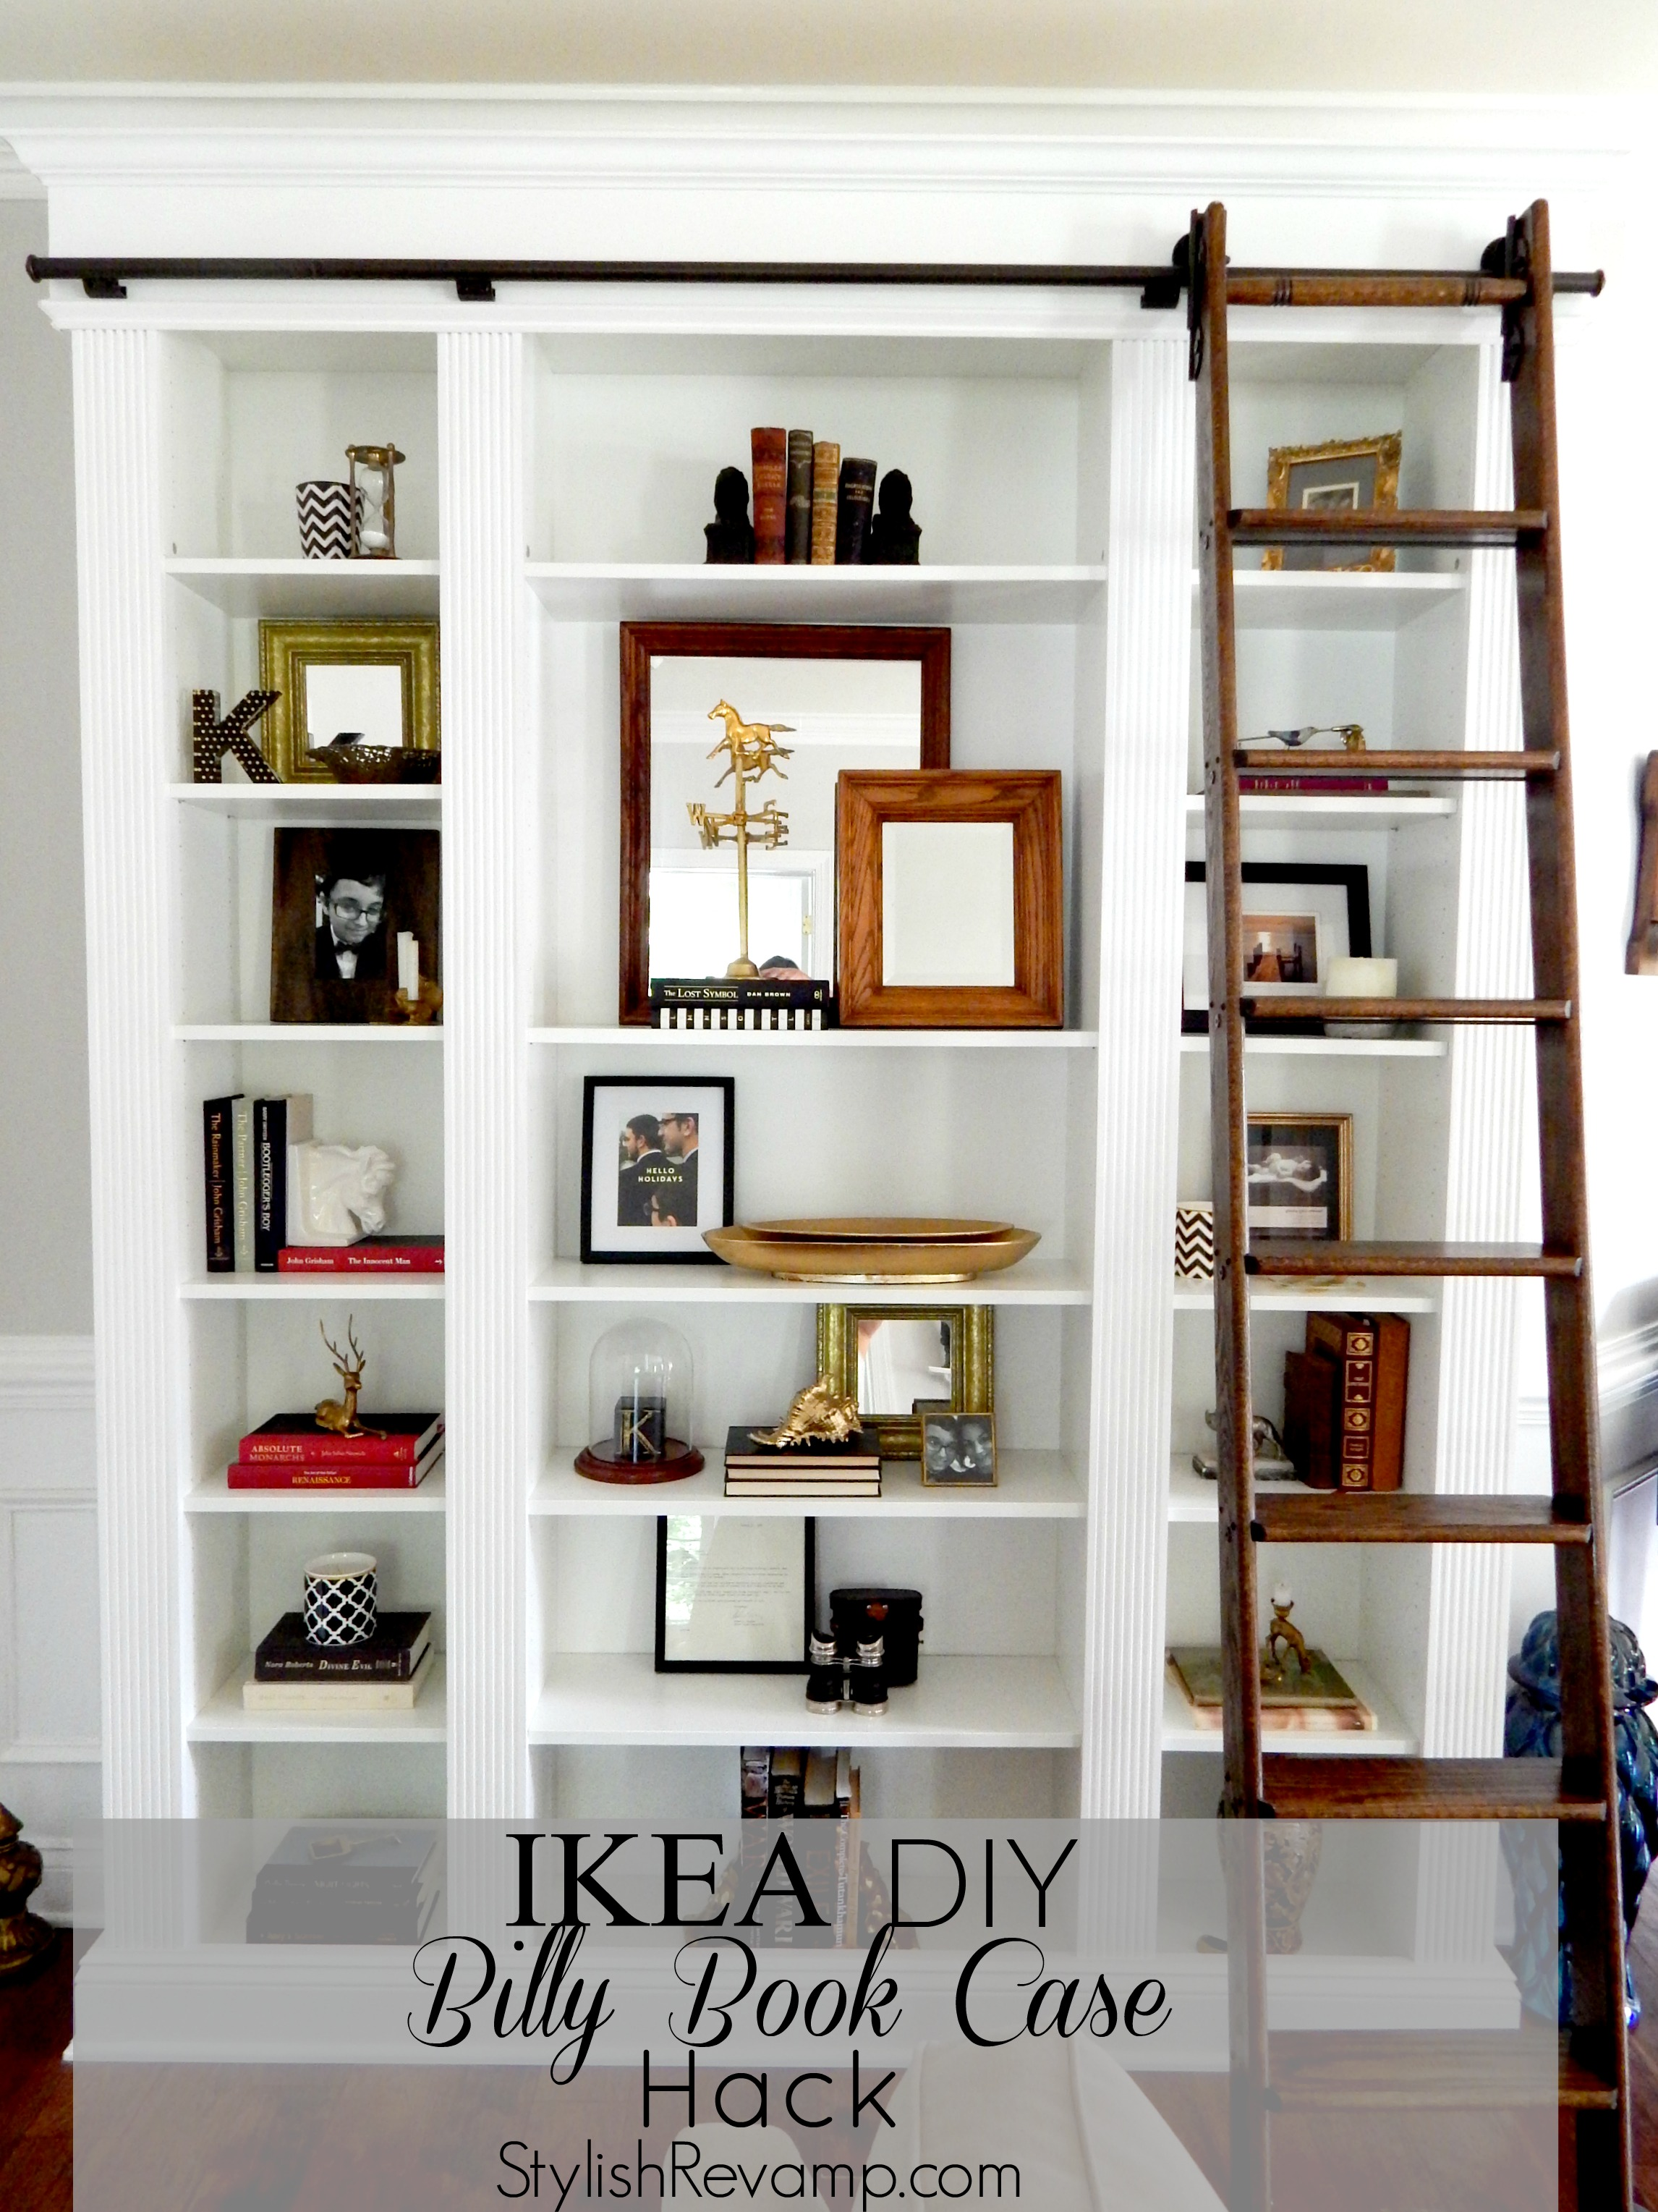 Designing With The Ikea Book Case